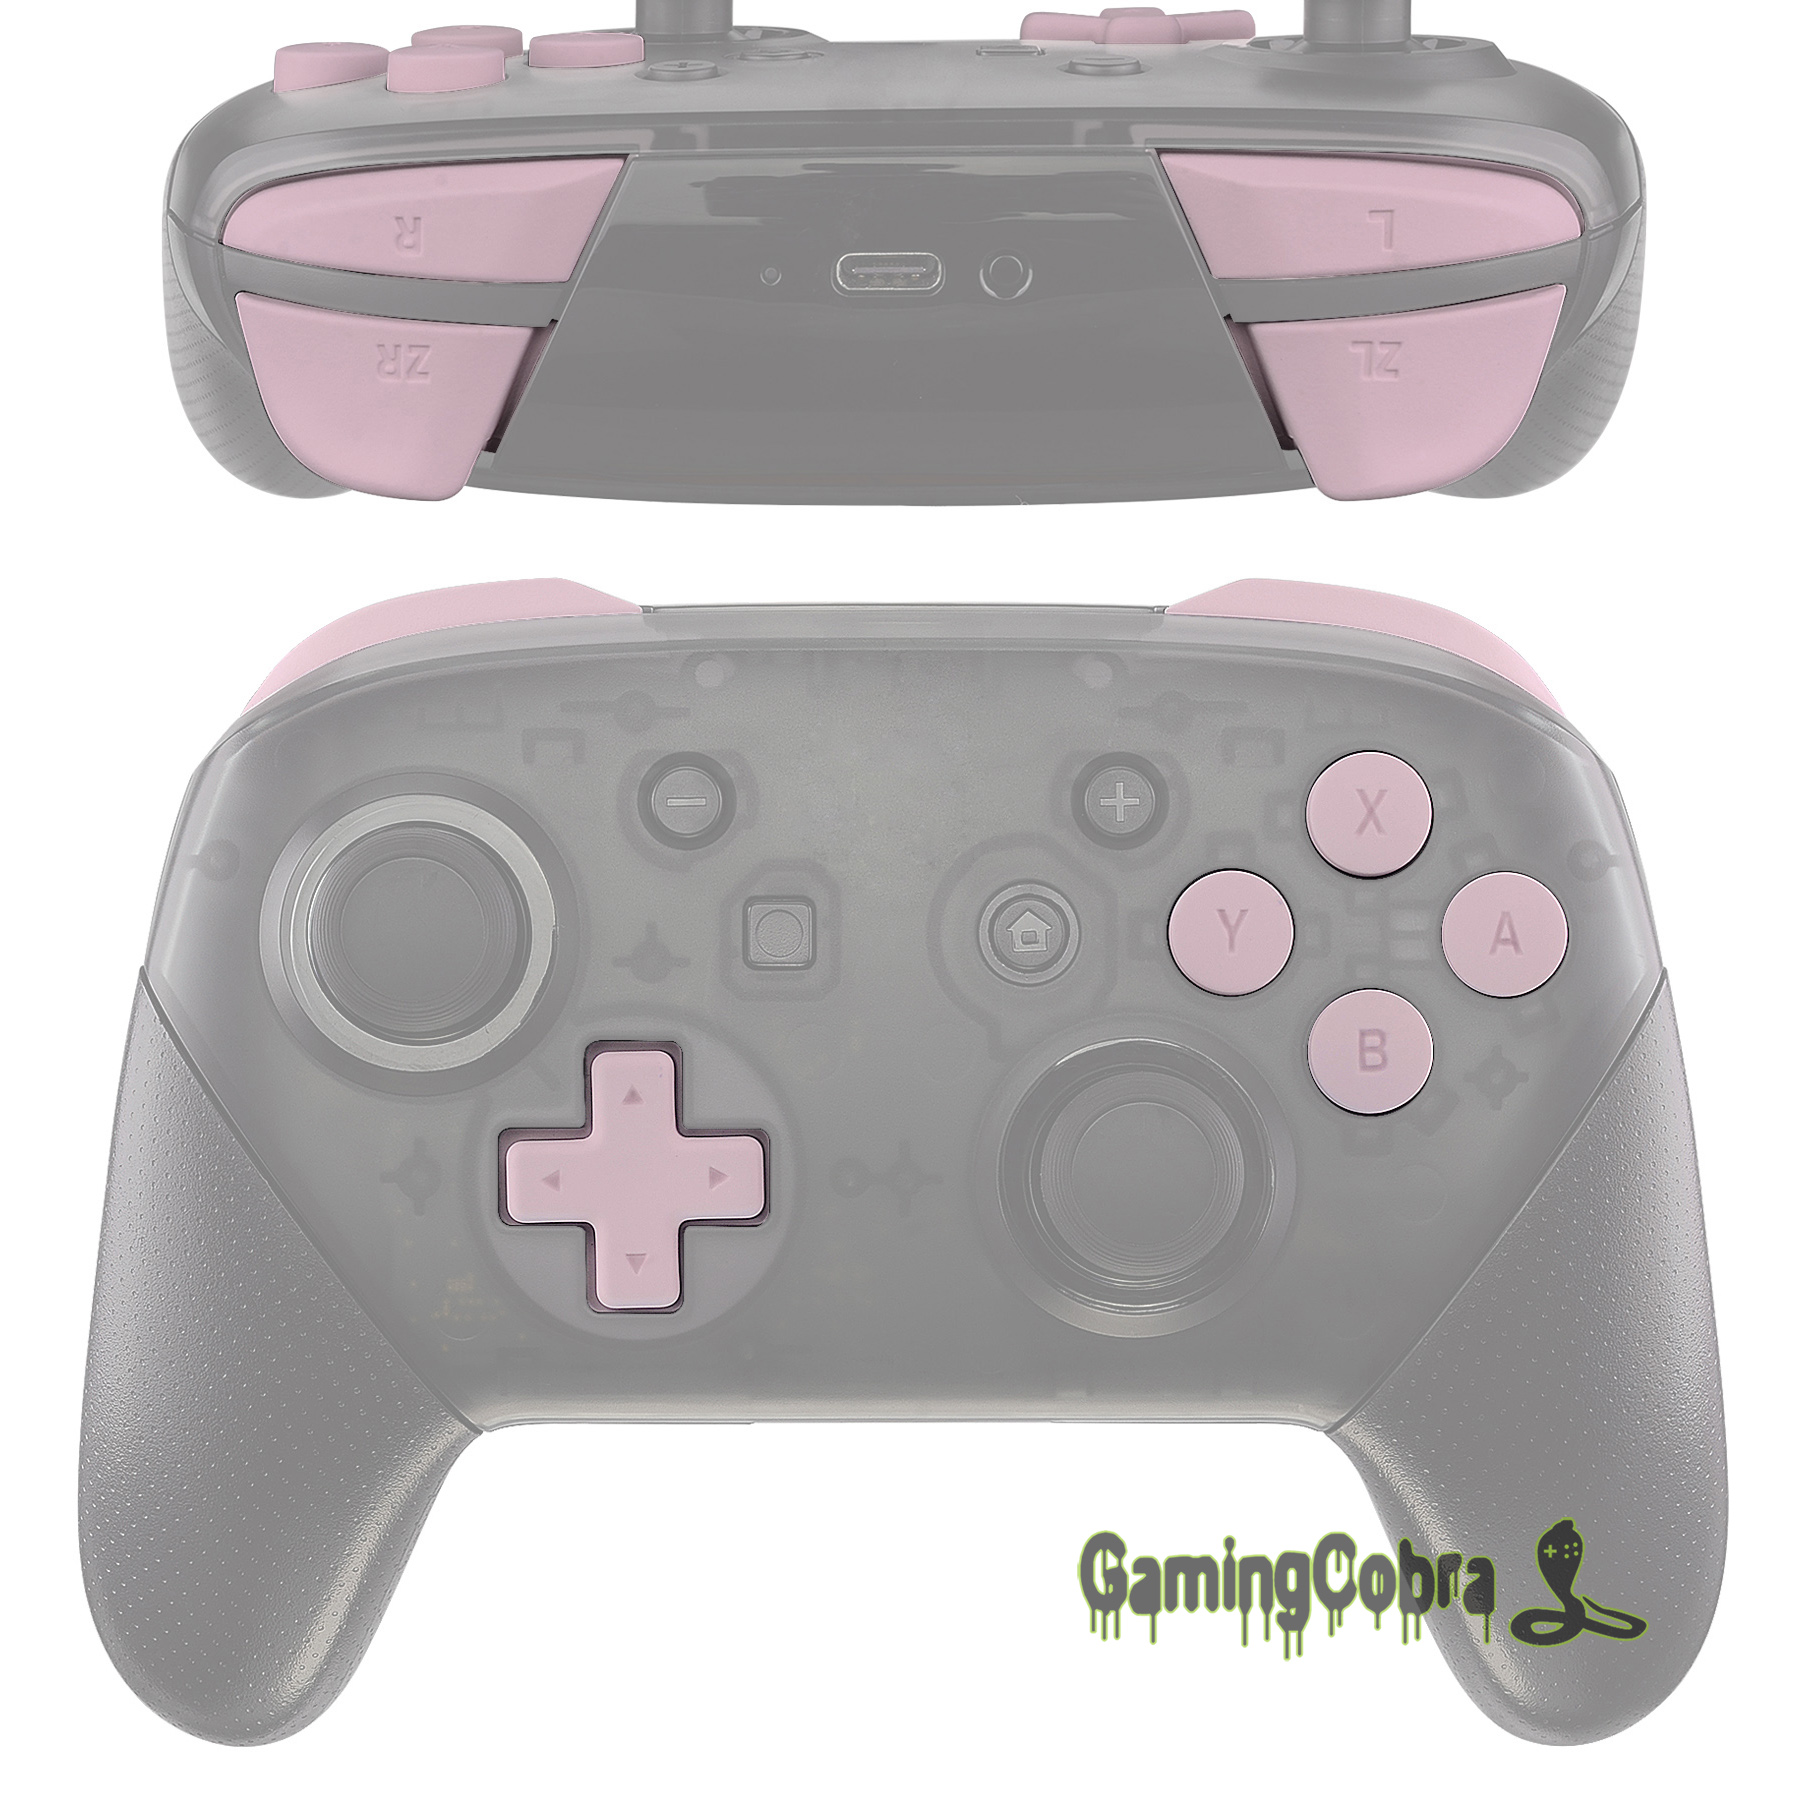 Soft Touch Sakura Pink Repair ABXY D-pad ZR ZL L R Keys Replacement Full Set Buttons W/ Tools For Nintendo Switch Pro Controller